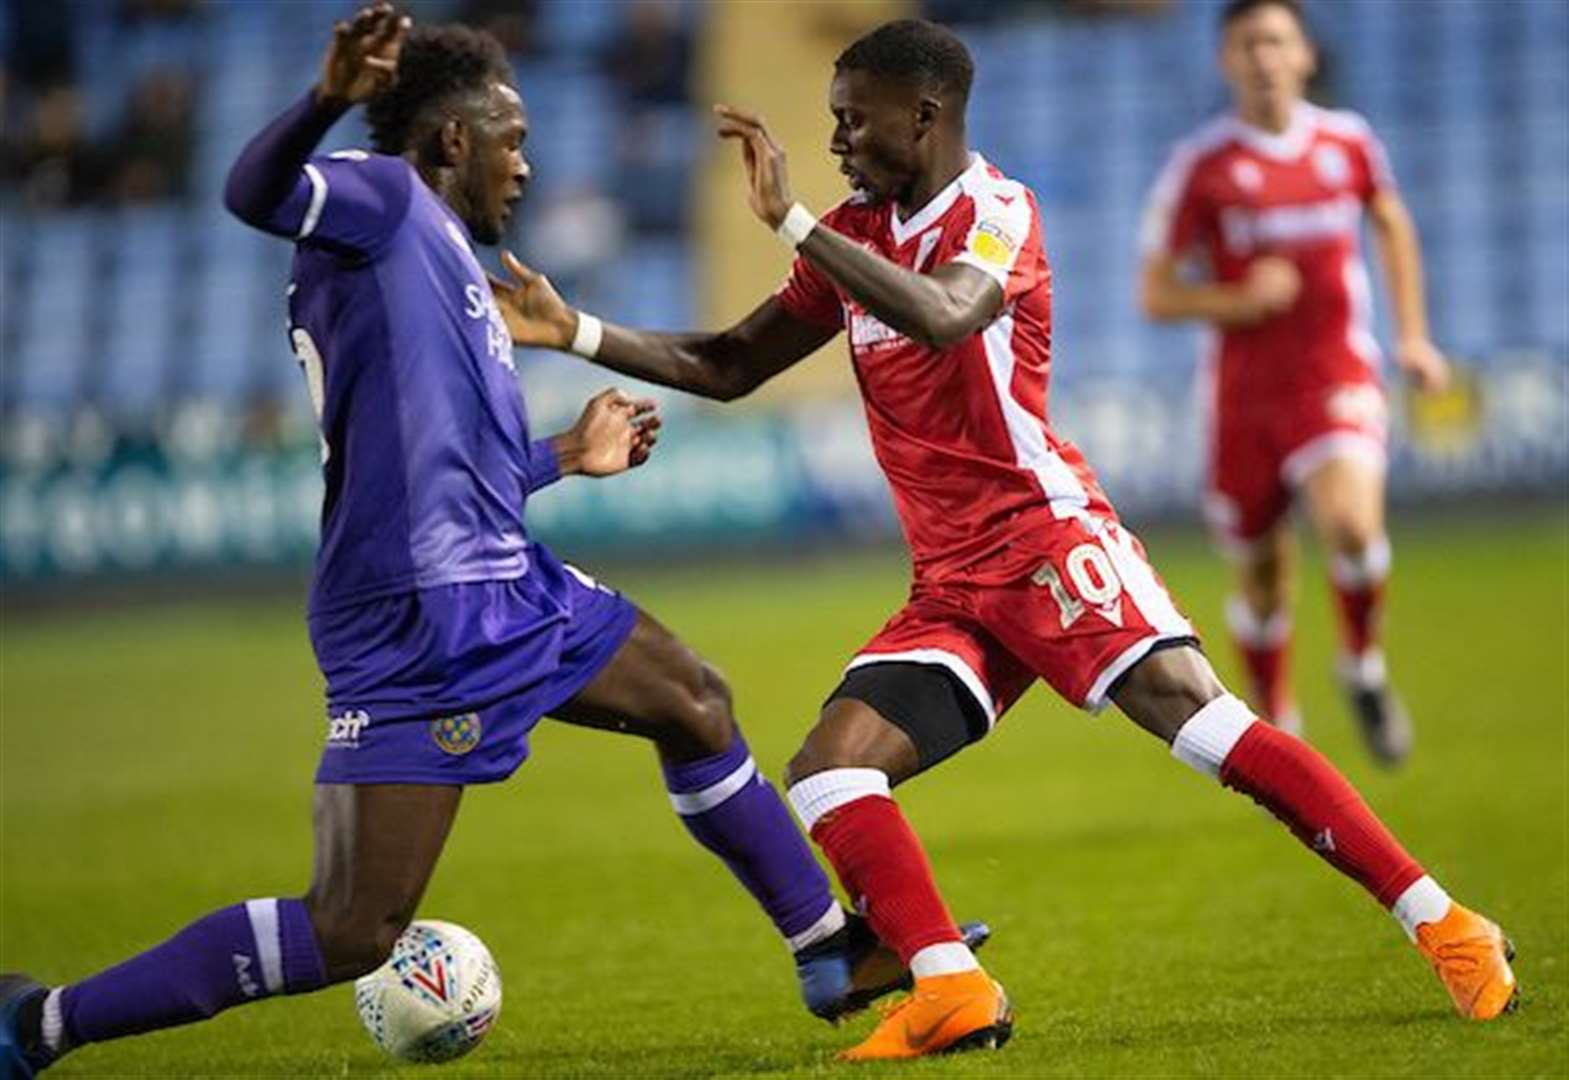 Report: Gills unable to hold onto their lead